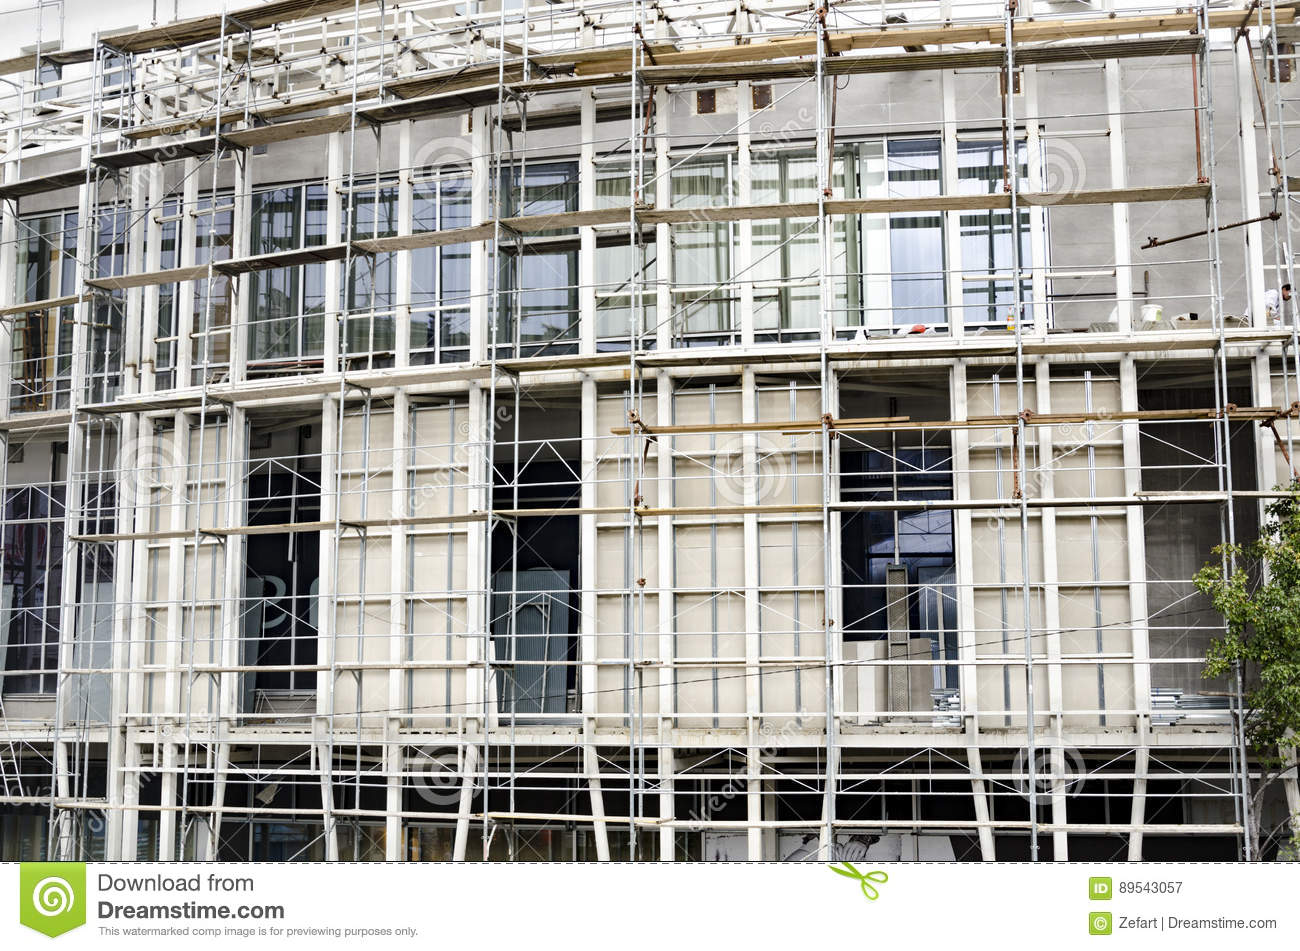 Plaster Building Scaffolding A Building Under Construction Stock Image Image Of